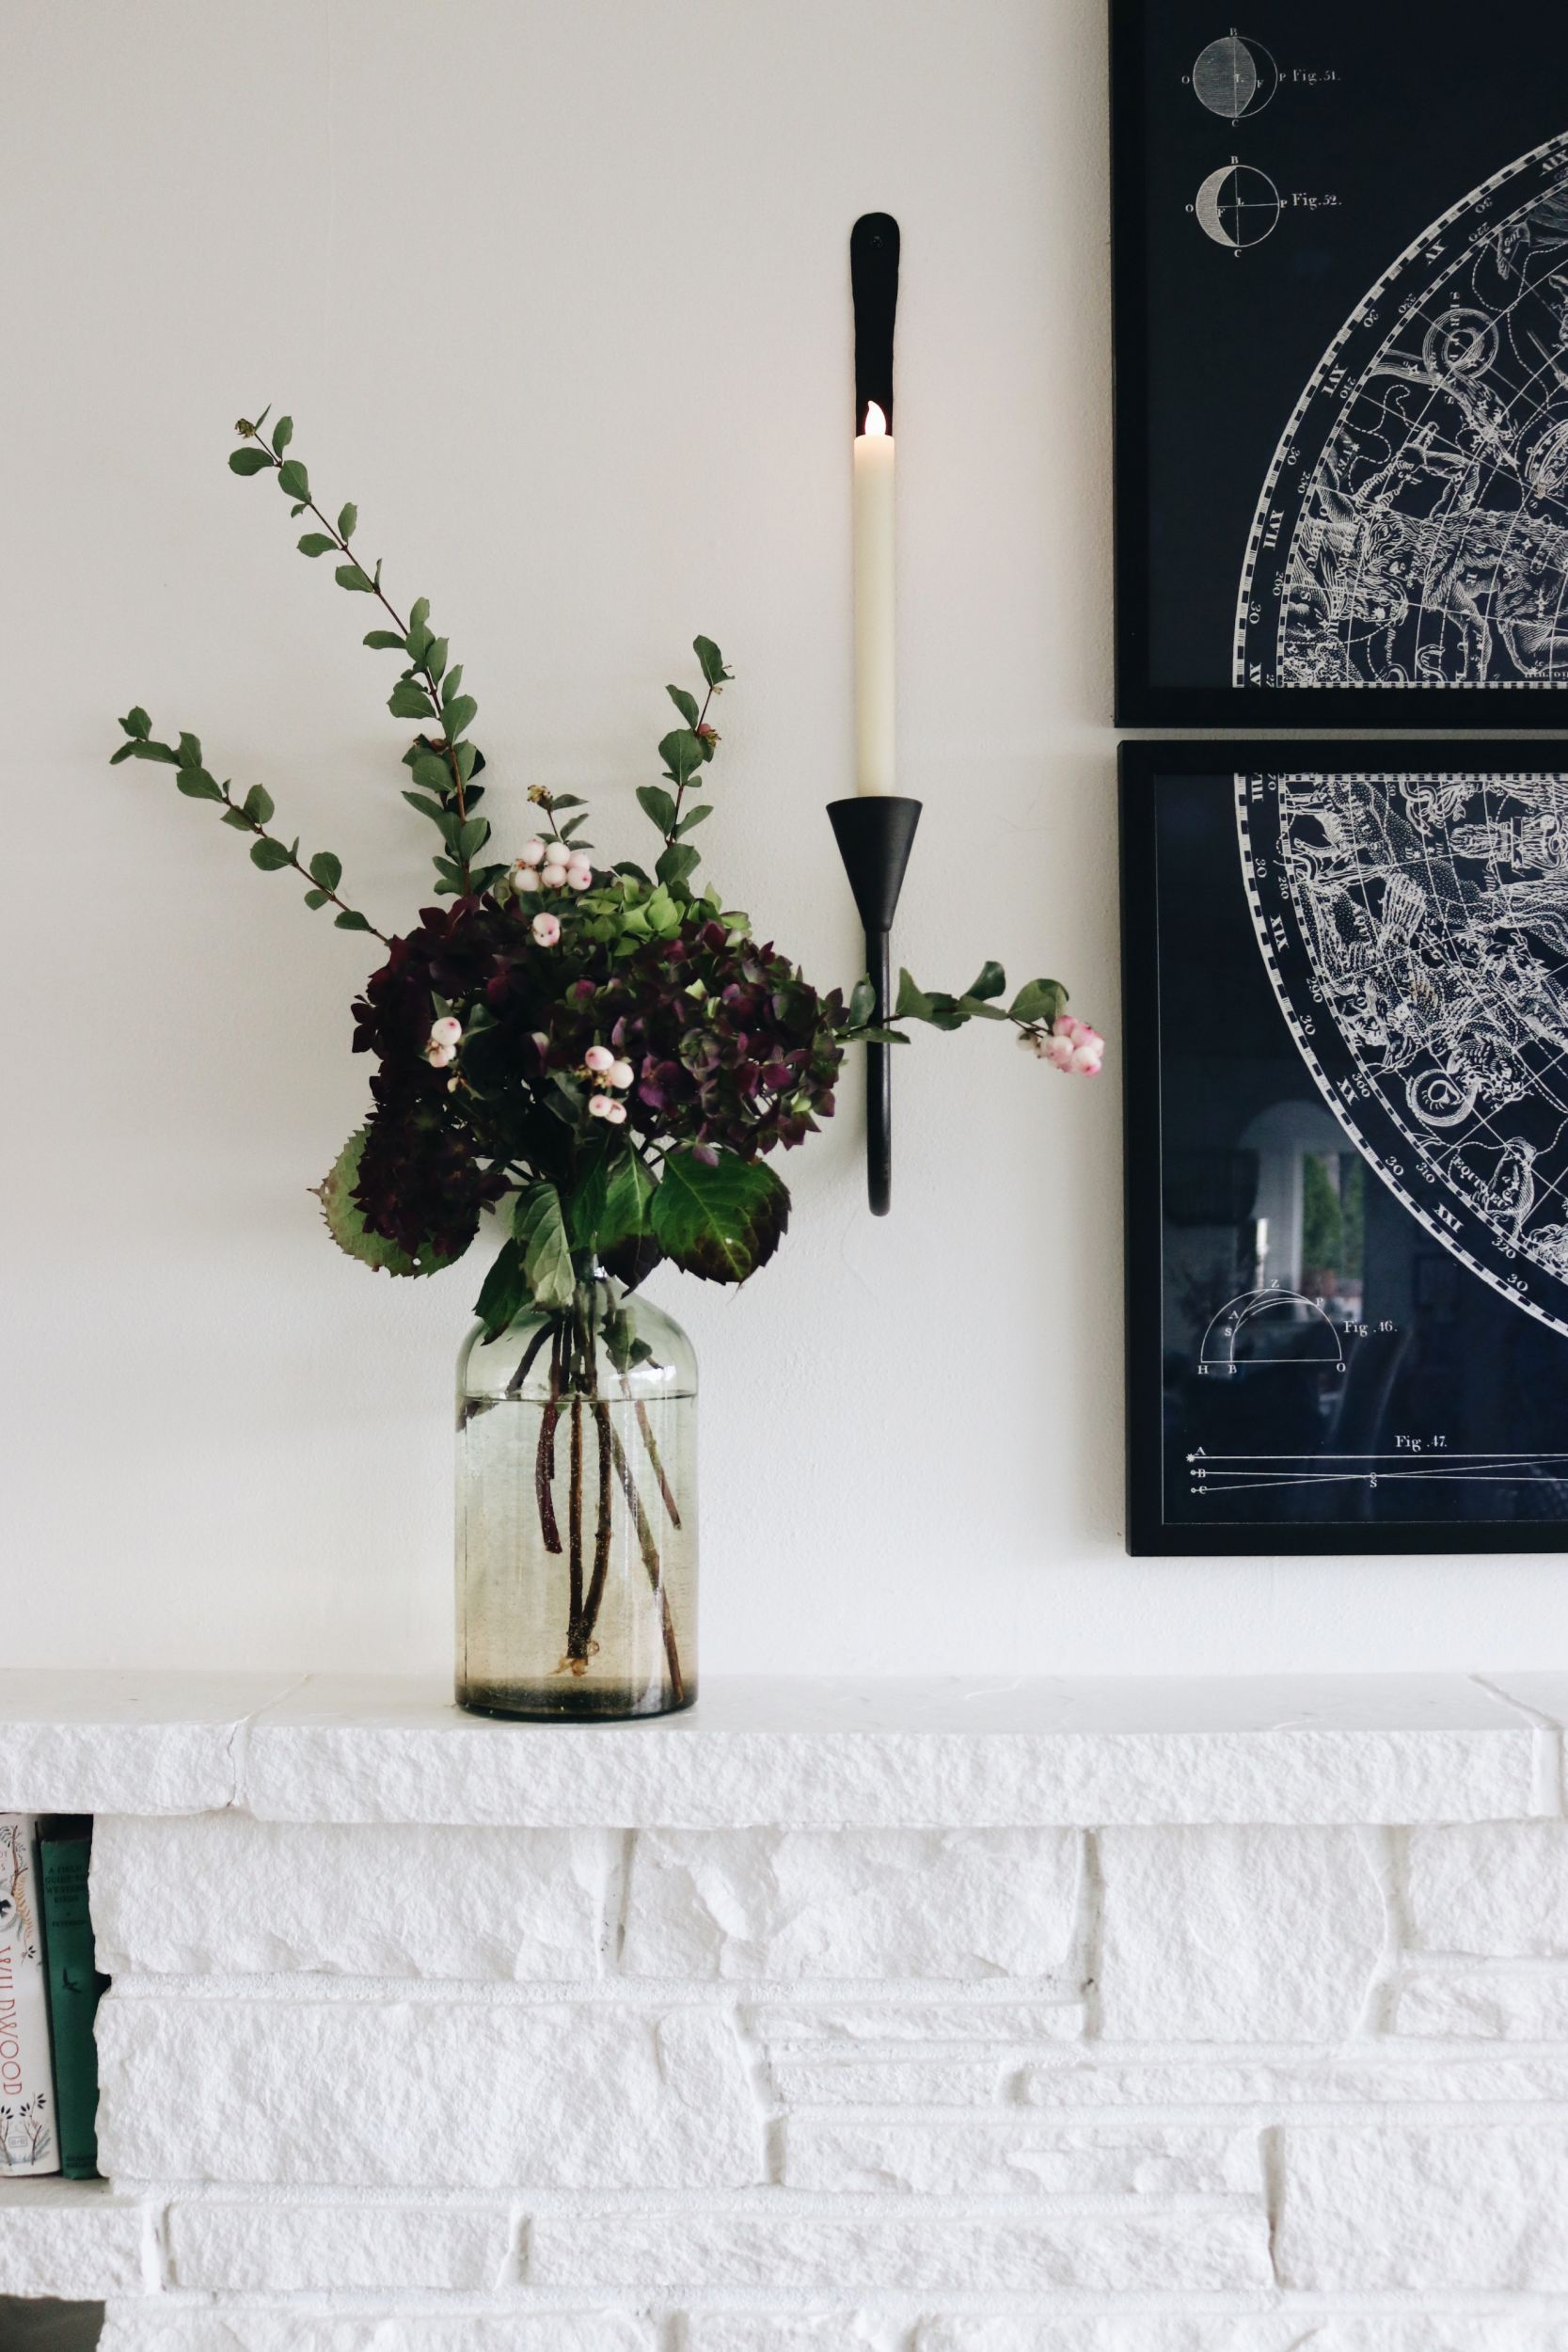 Charming Inexpensive Decorating: Non-Electric Wall Lights ... on Non Electric Wall Sconces For Candles id=85143